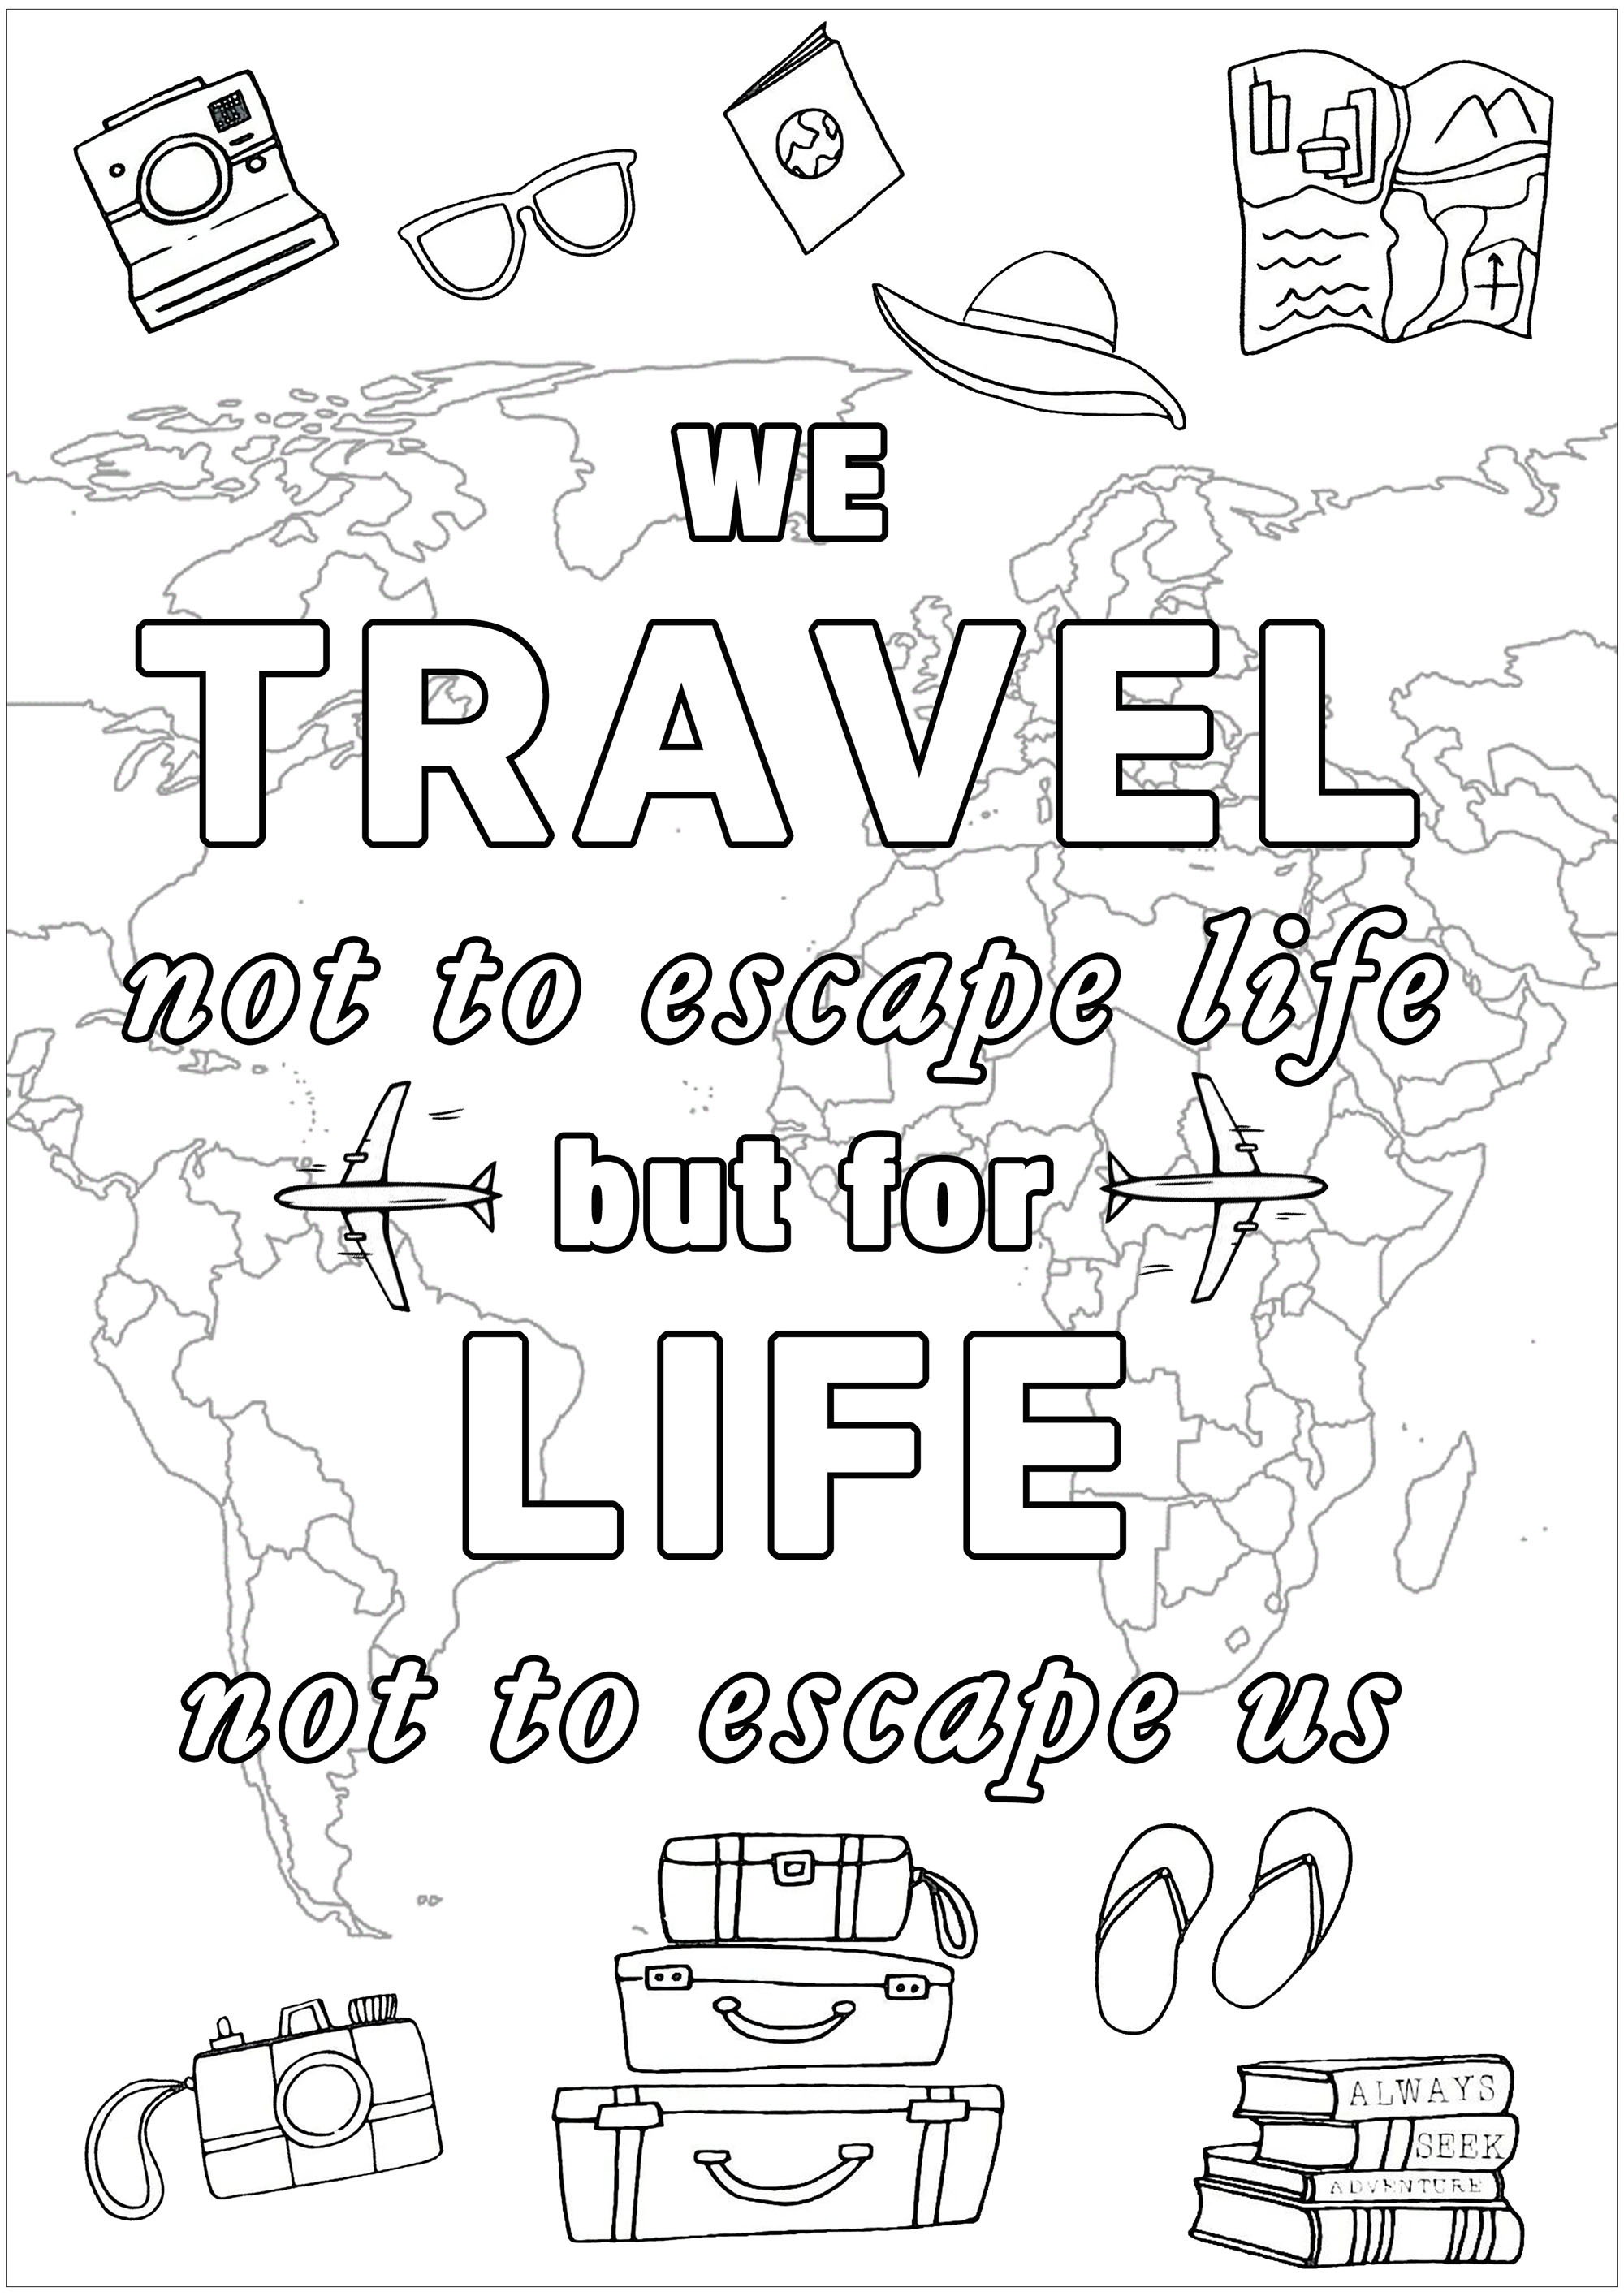 We travel not to escape life ... but life not to escape us